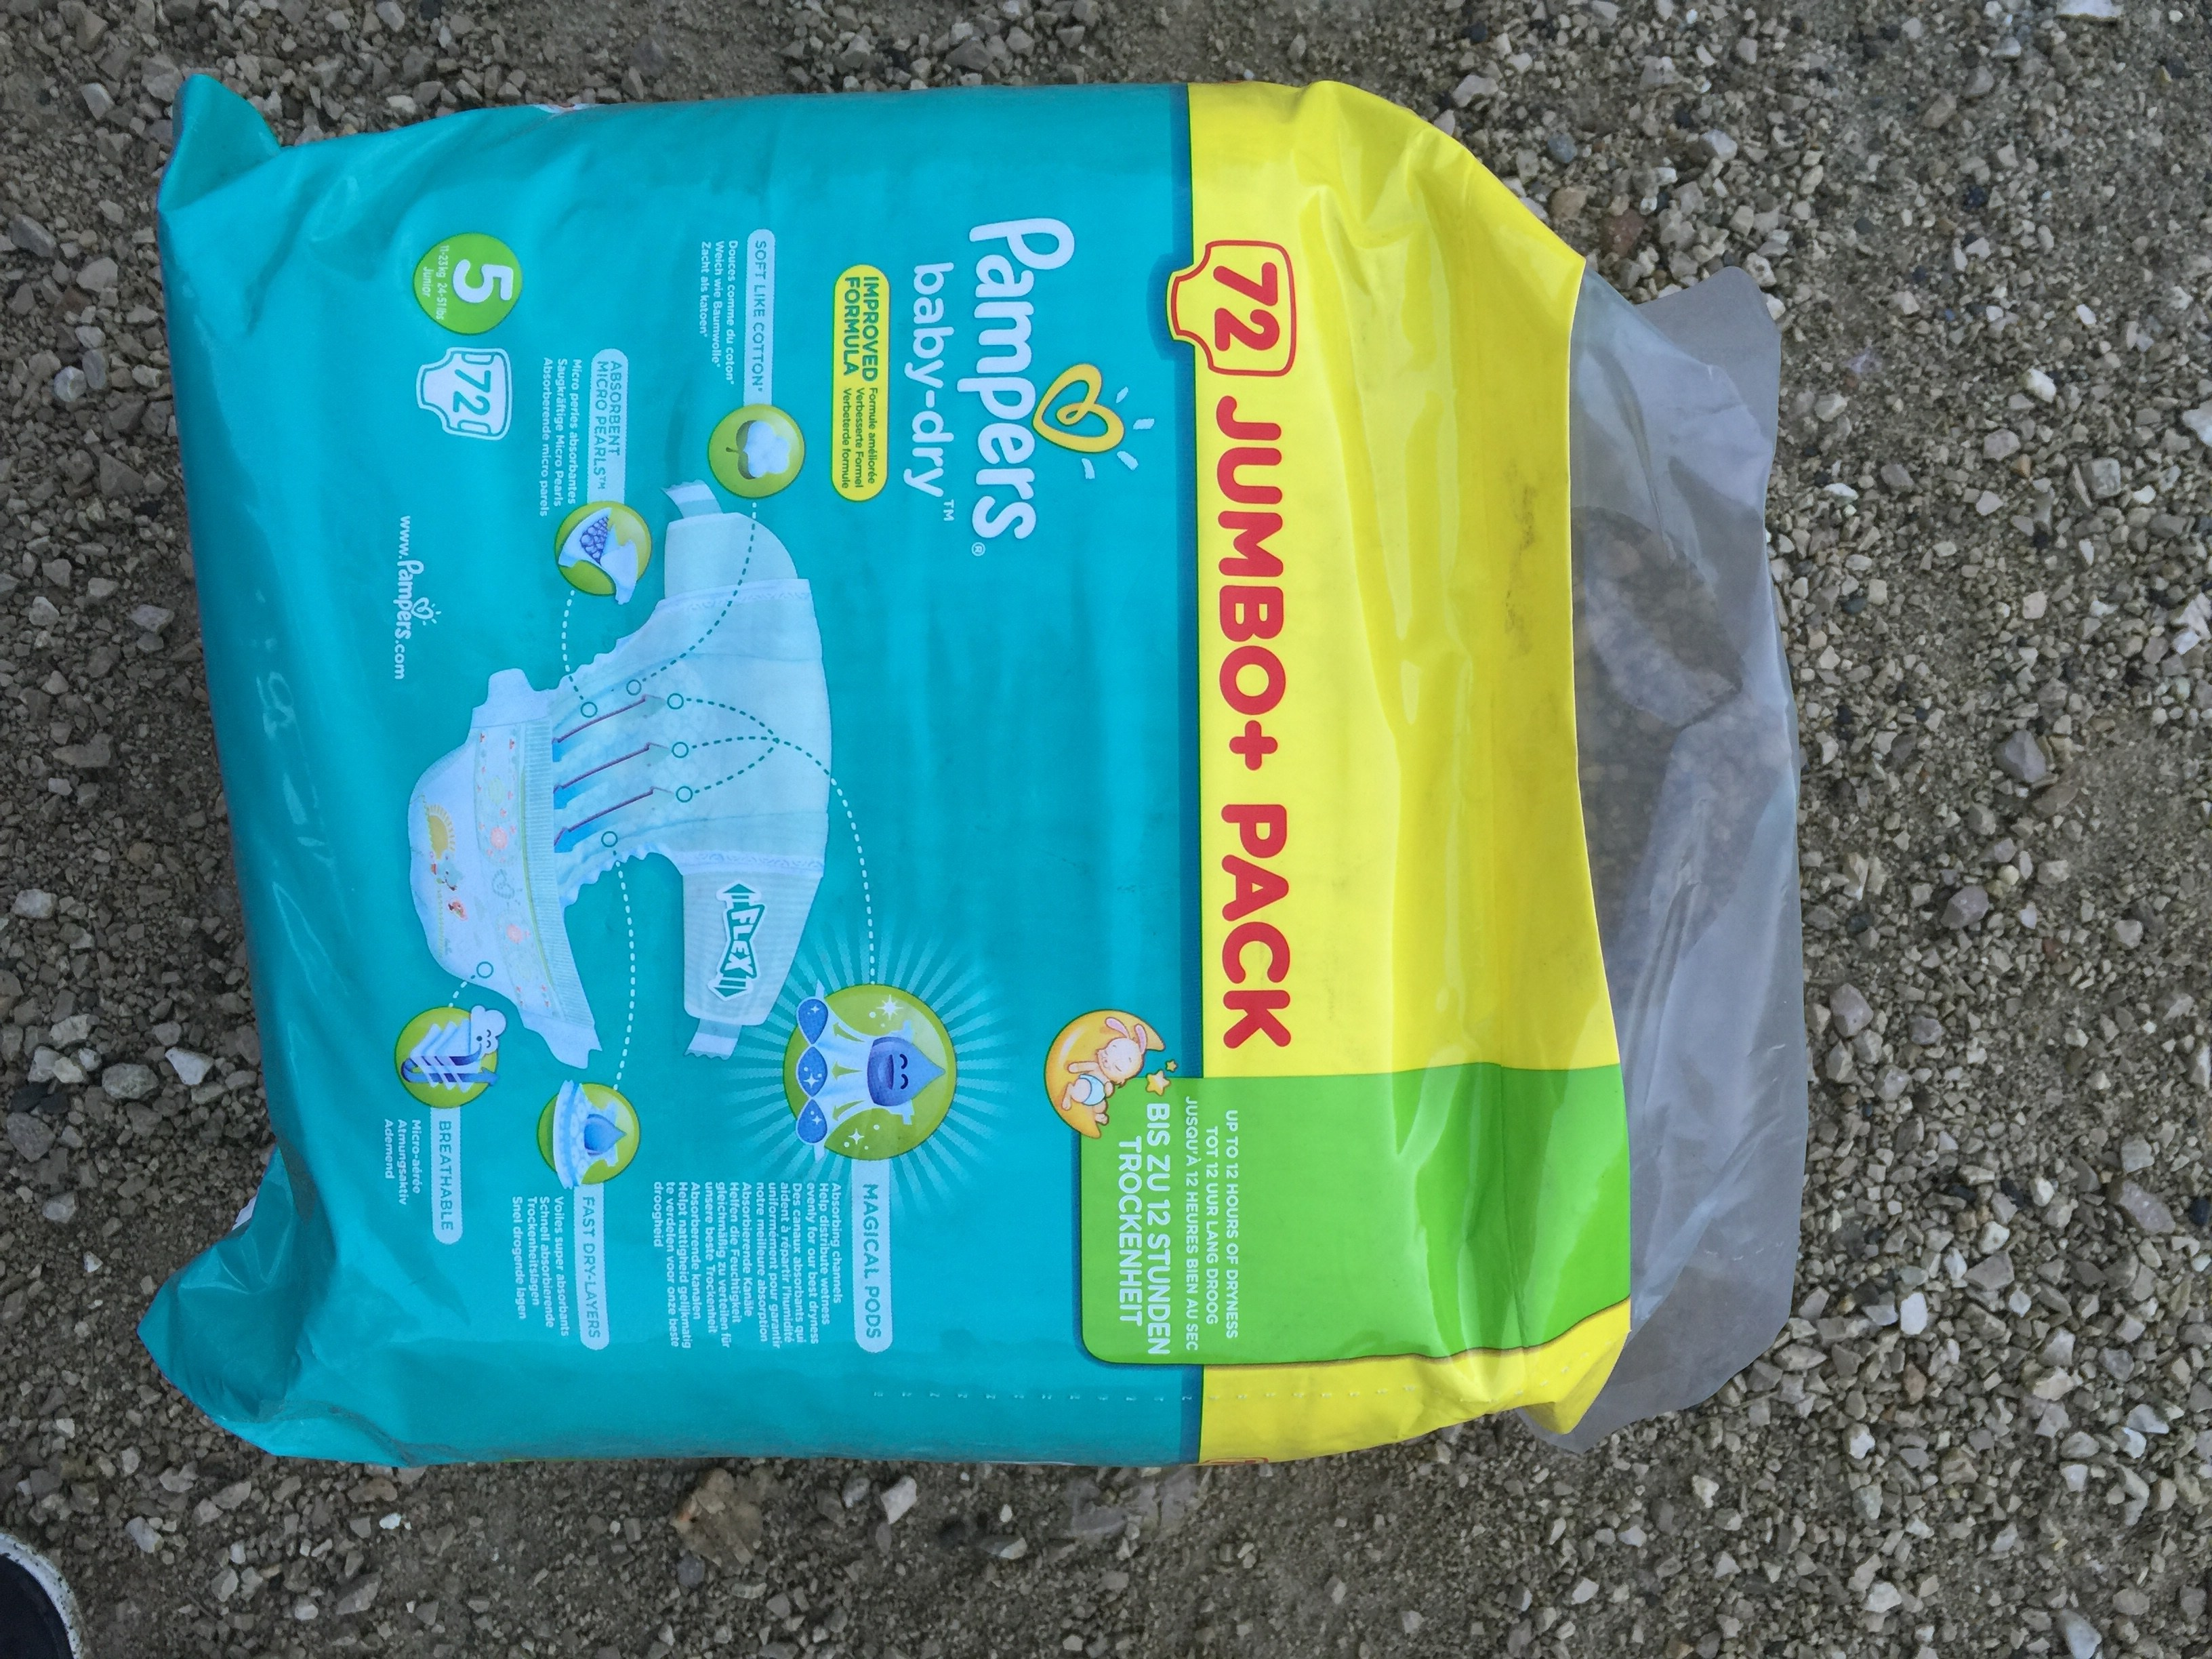 Couche Pampers Prix Couche Pampers Neuf Taille 4 Et 5 Prix Dans L Annonce